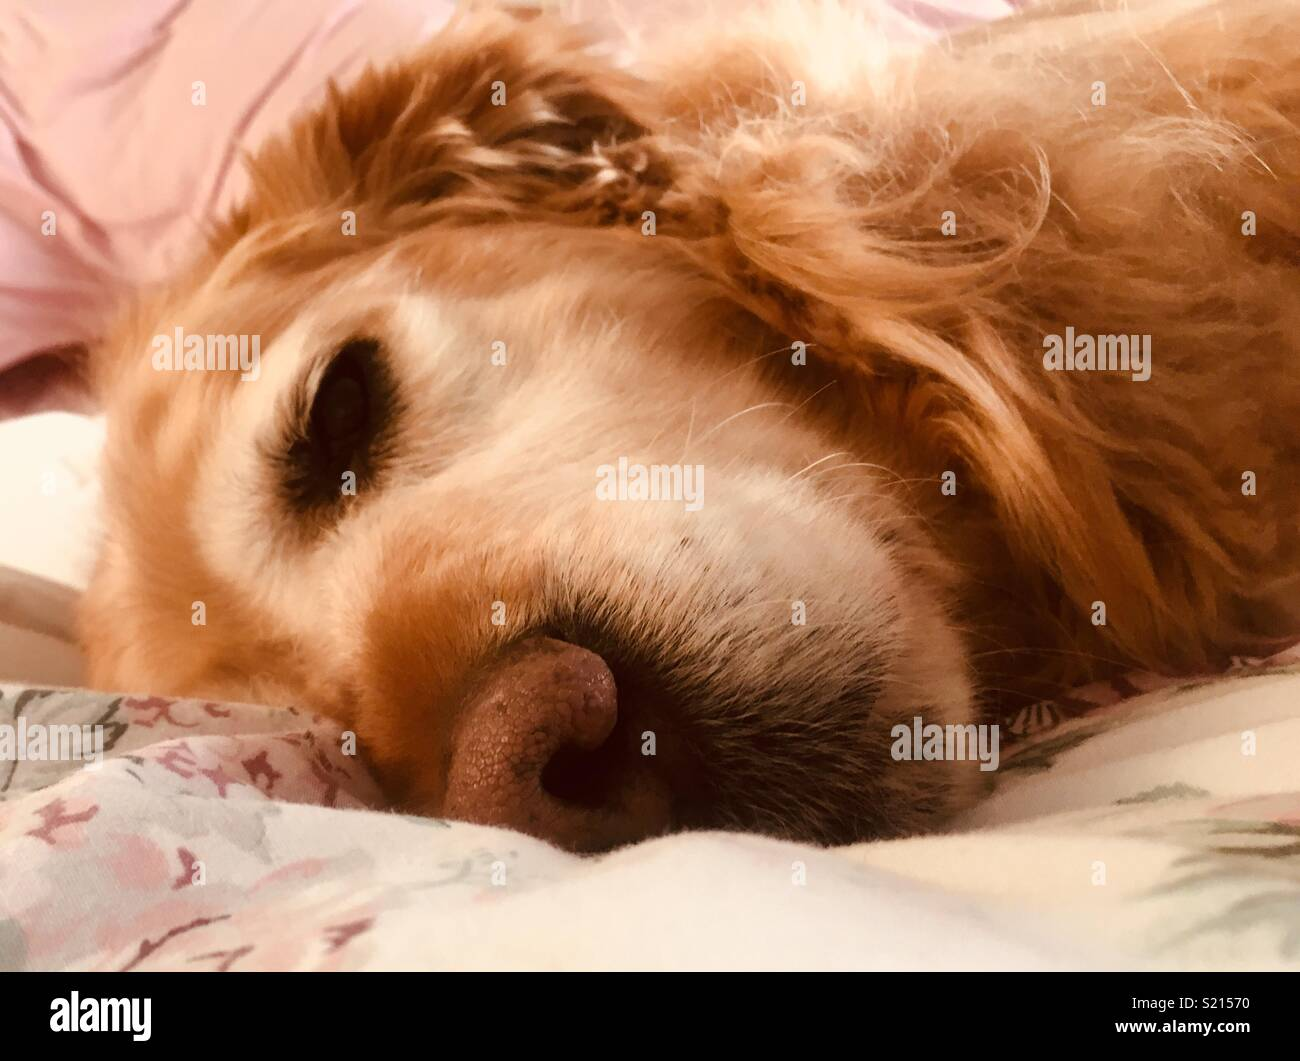 Snoozing pup - Stock Image